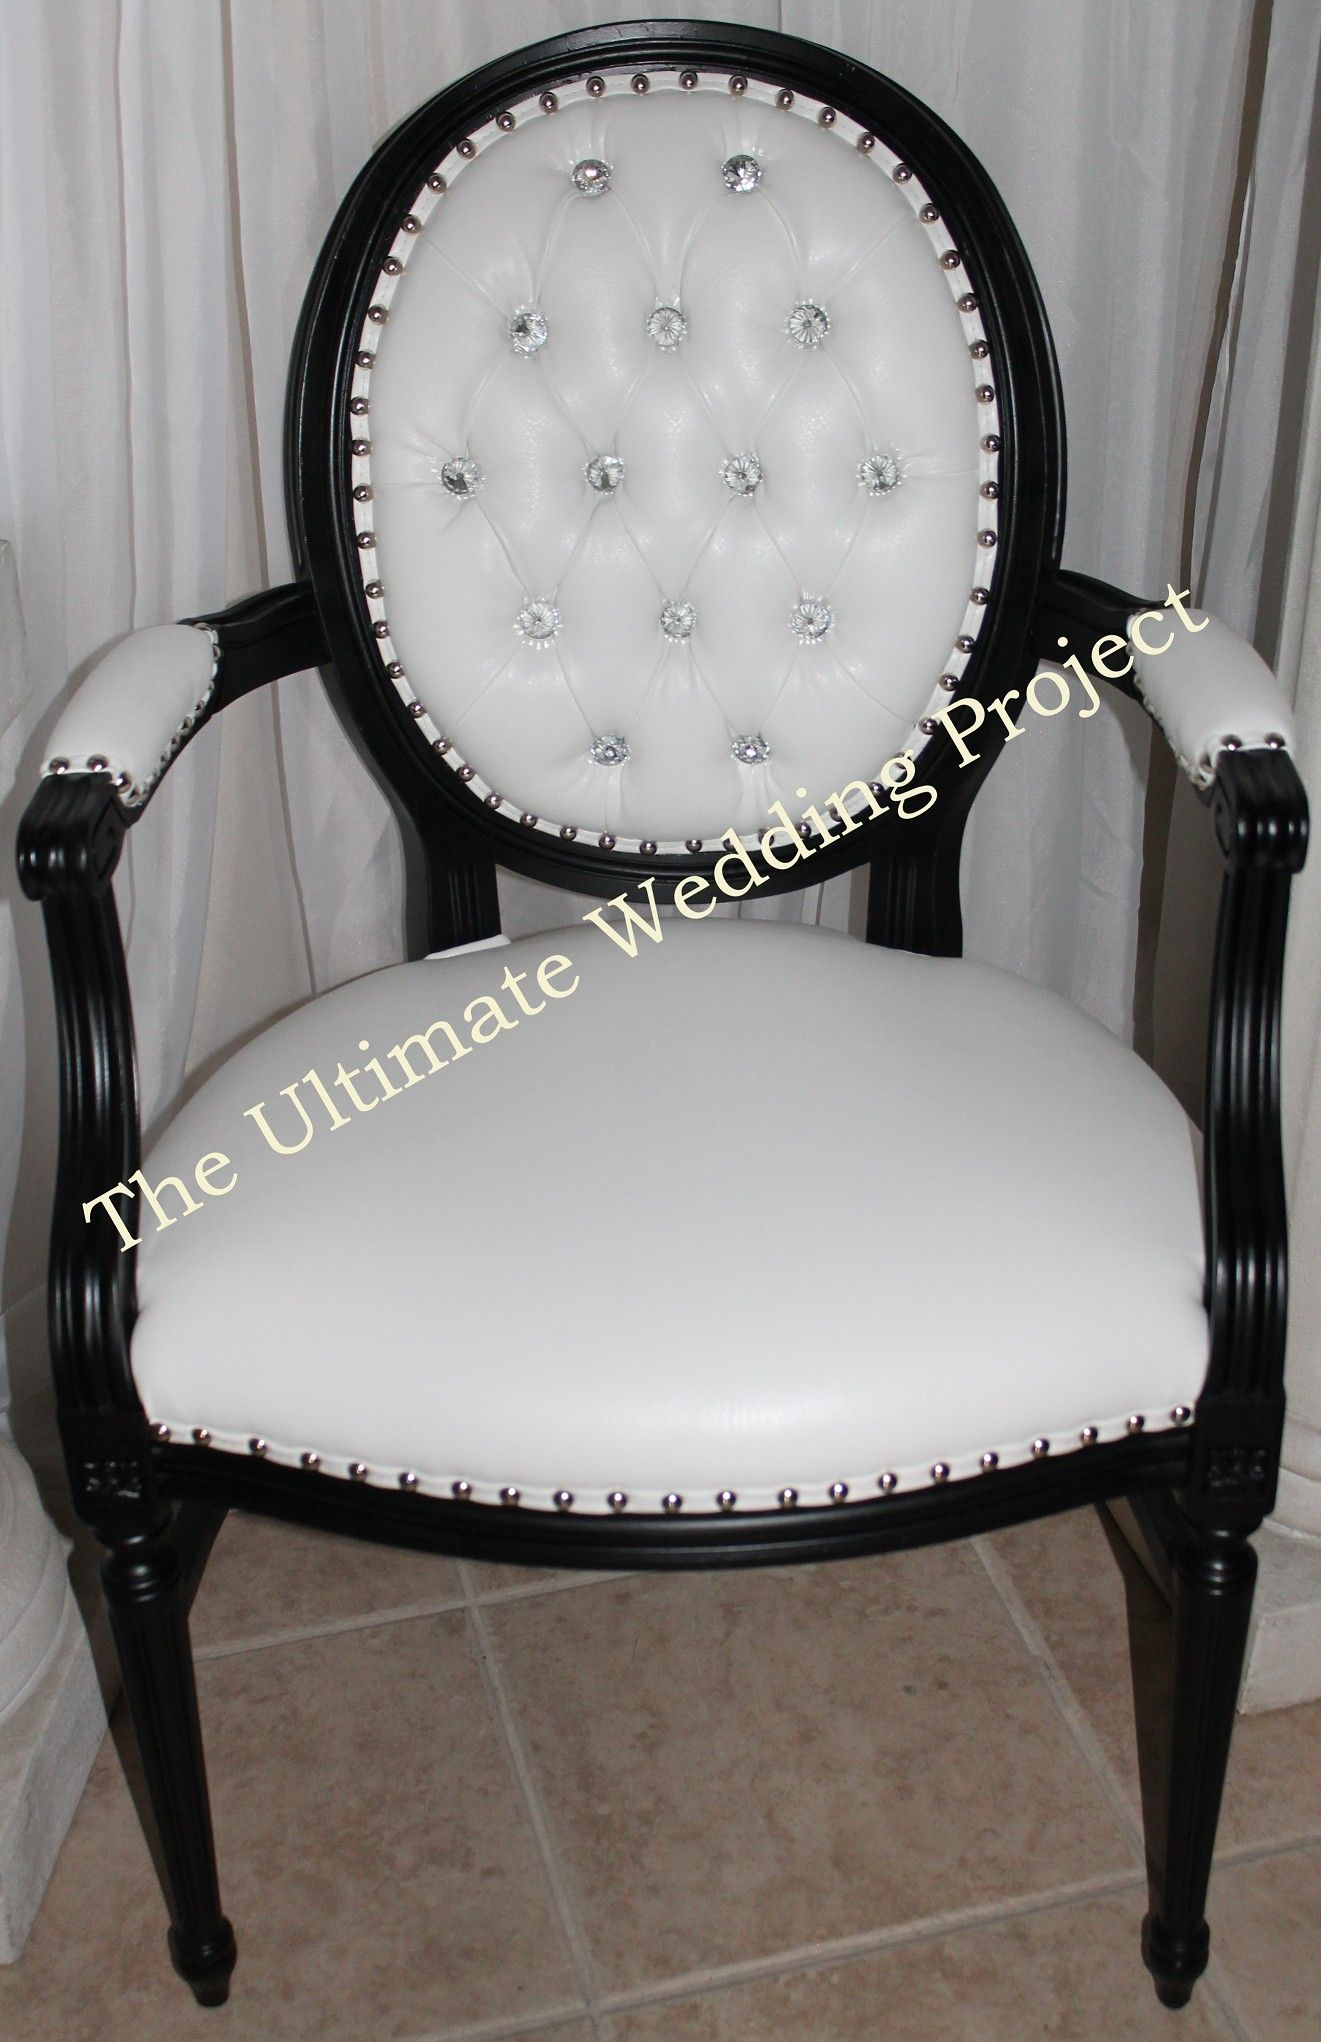 King And Queen Chairs For Rent Seat Cushions Dining Chair Rentals Toronto Gta The Ultimate